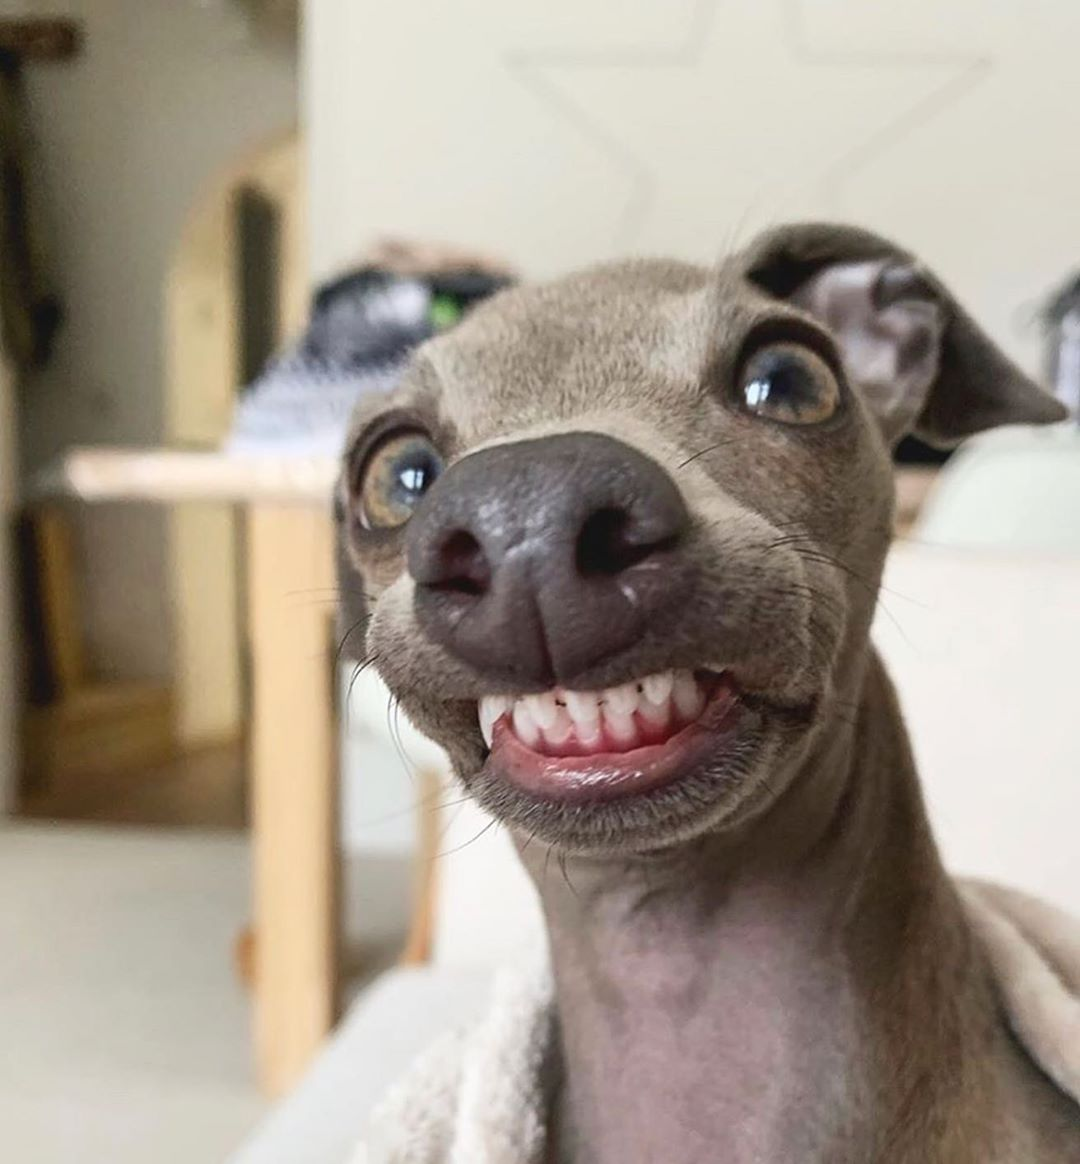 iggy coco italian greyhound derp funny face boop